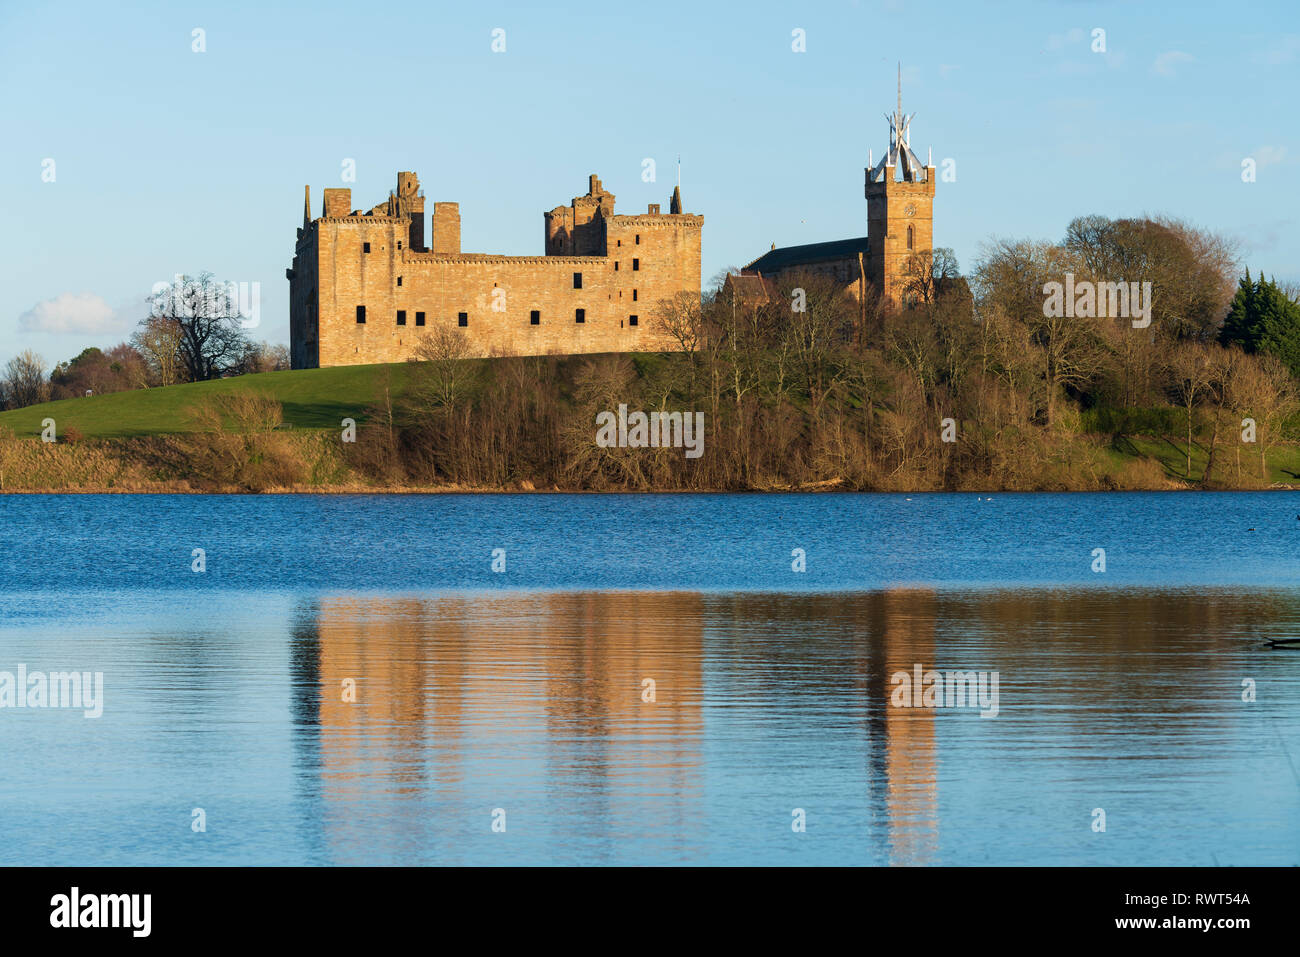 View of Linlithgow Palace in Linlithgow, West Lothian, Scotland, UK. Birthplace of Mary Queen of Scots. - Stock Image